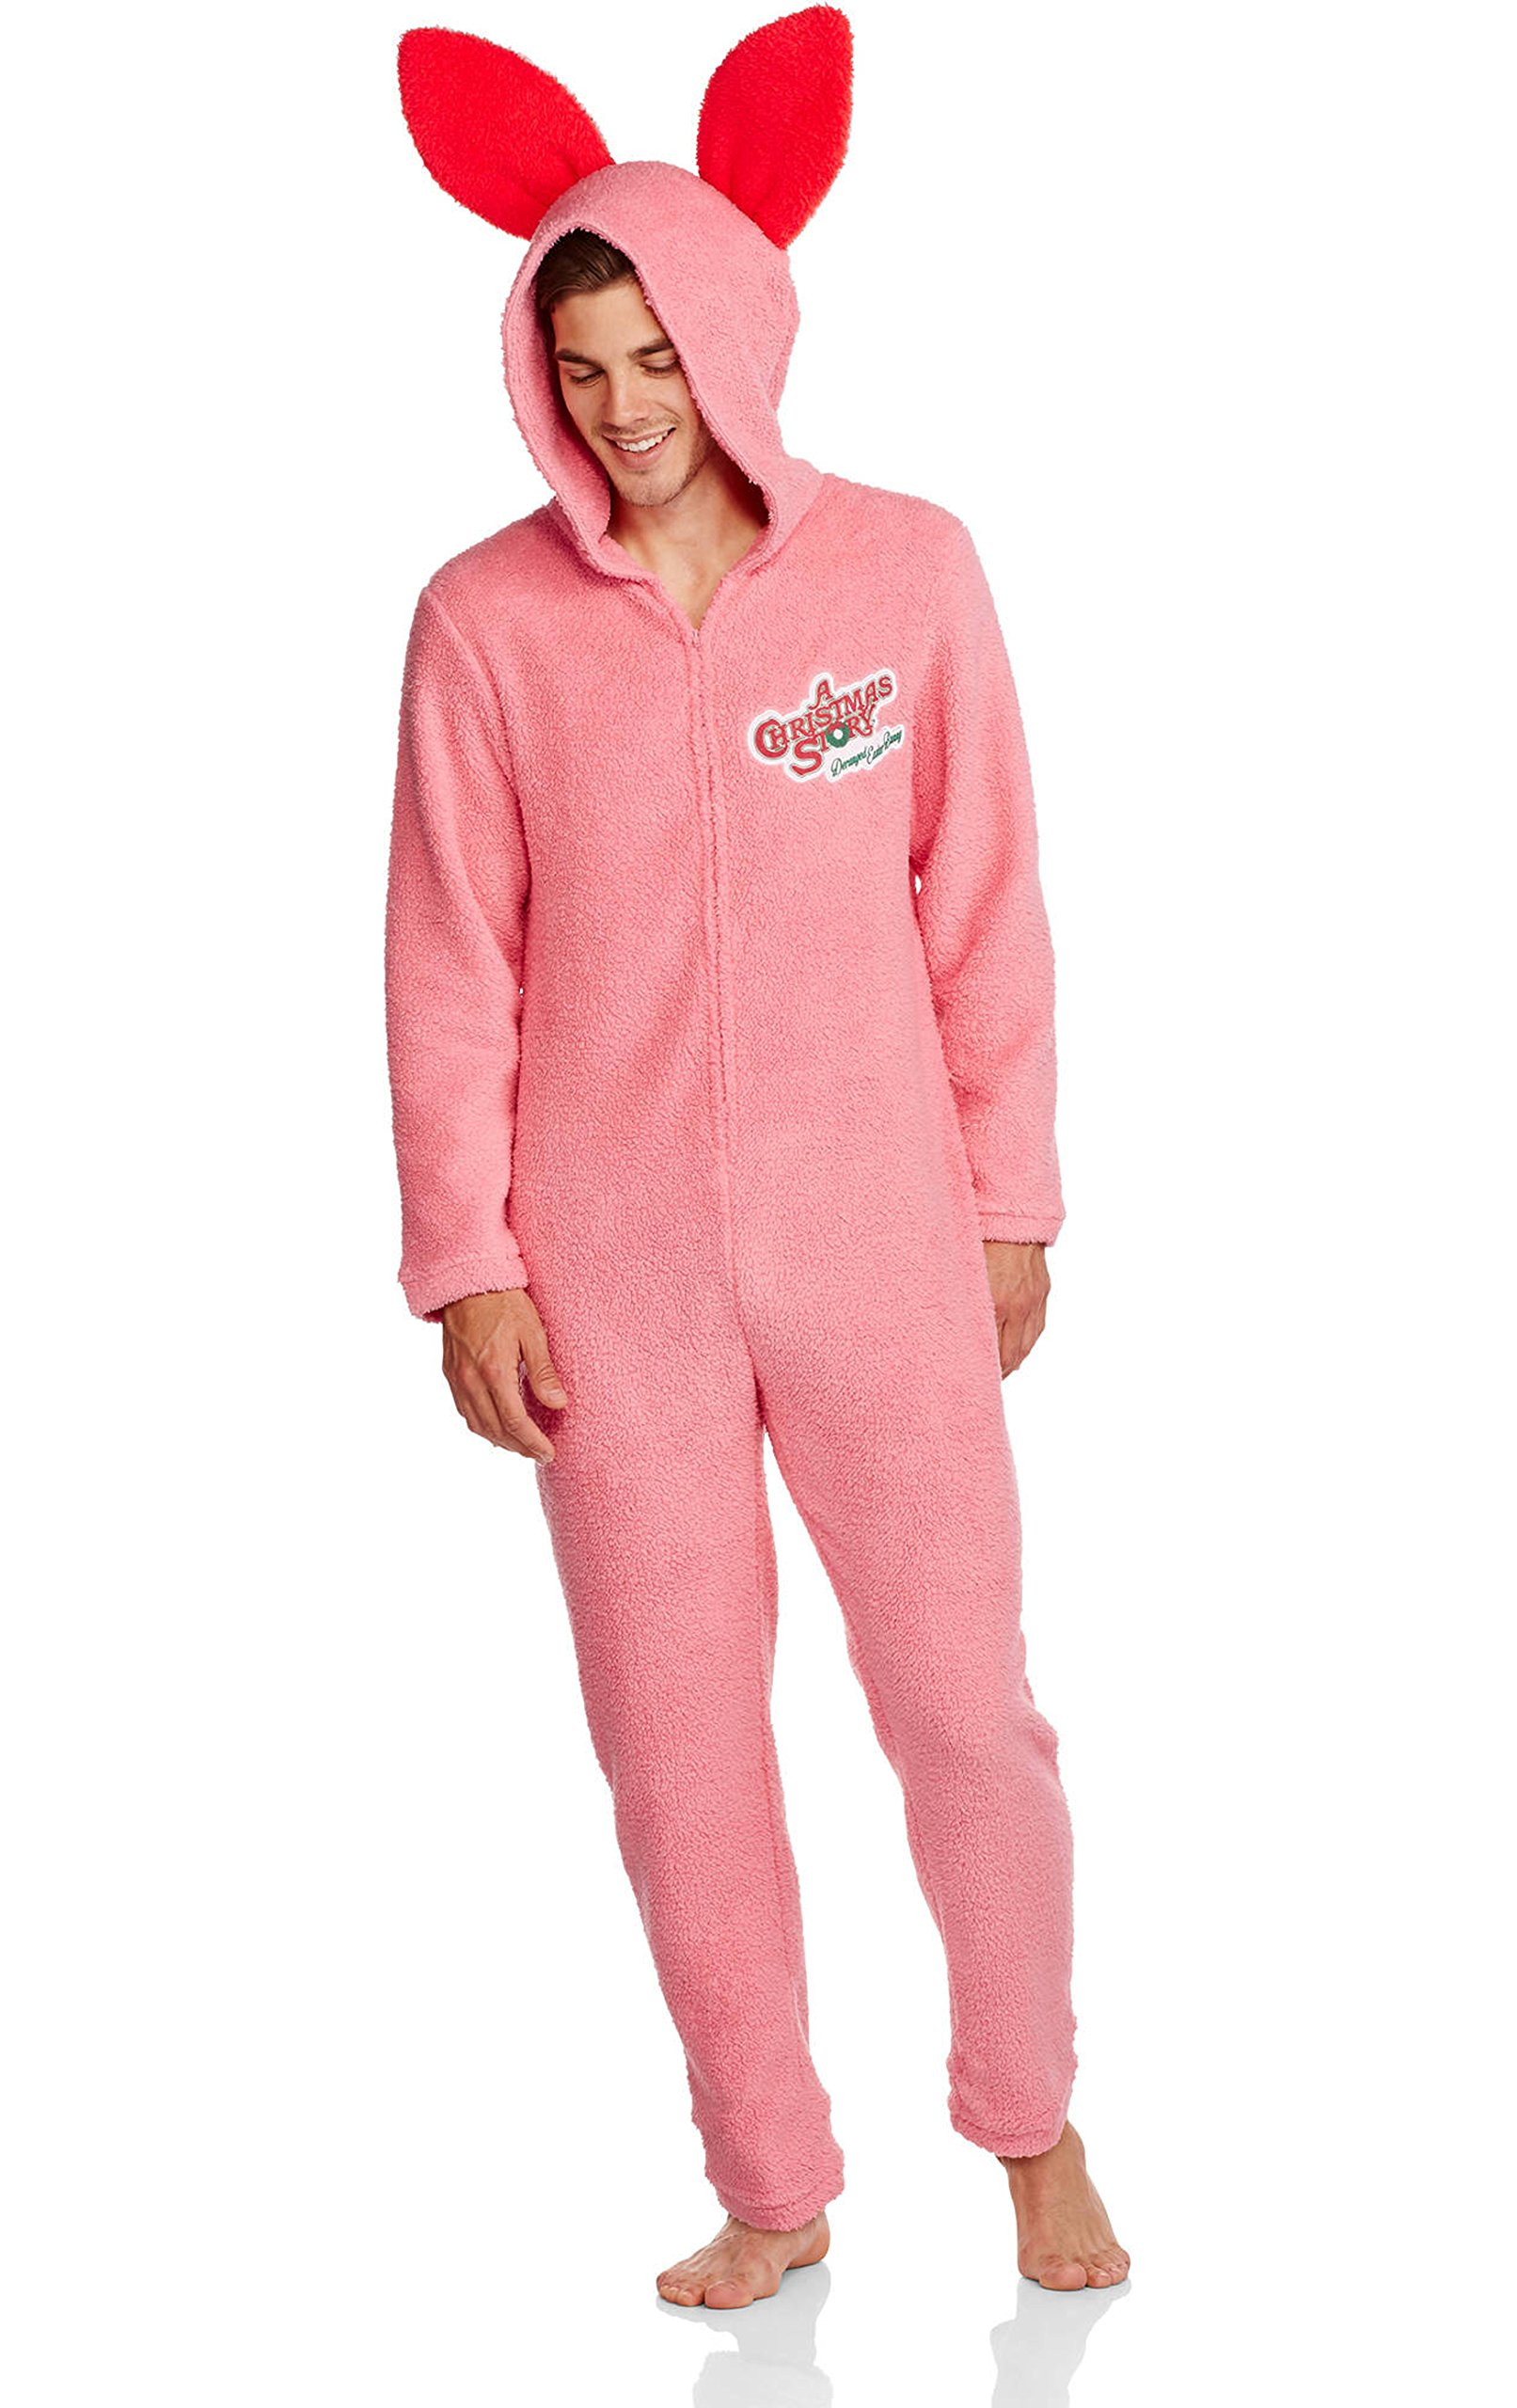 cb0ab561c7 ralphies bunny suit pajamas from aunt clara in a christmas story. a ...